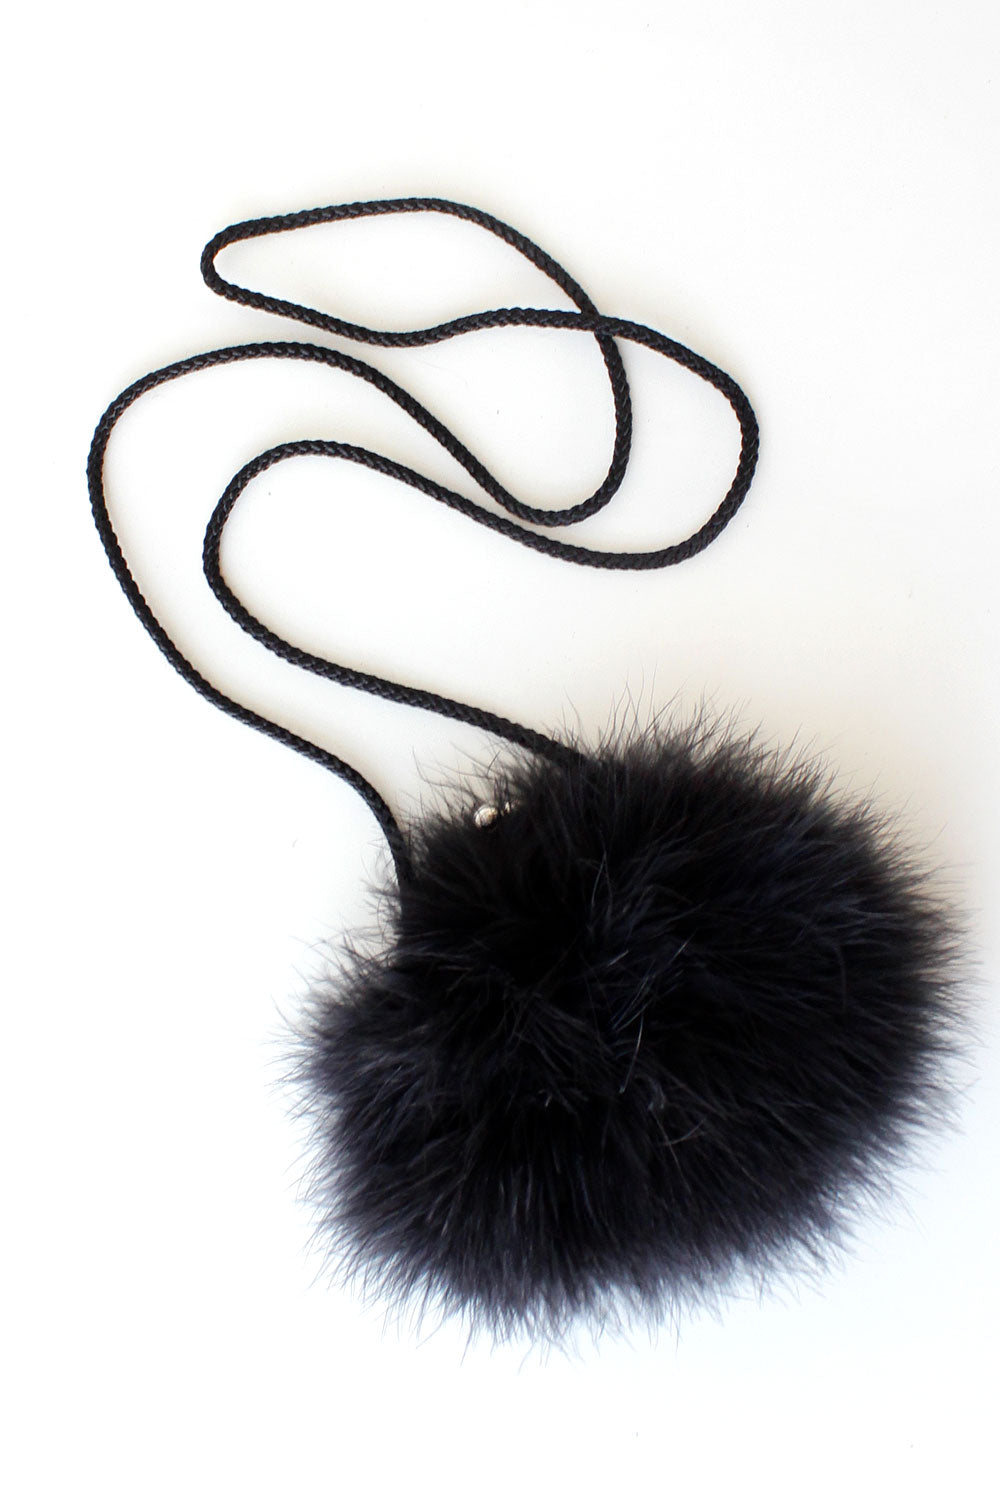 Cher Horowitz Feather Purse